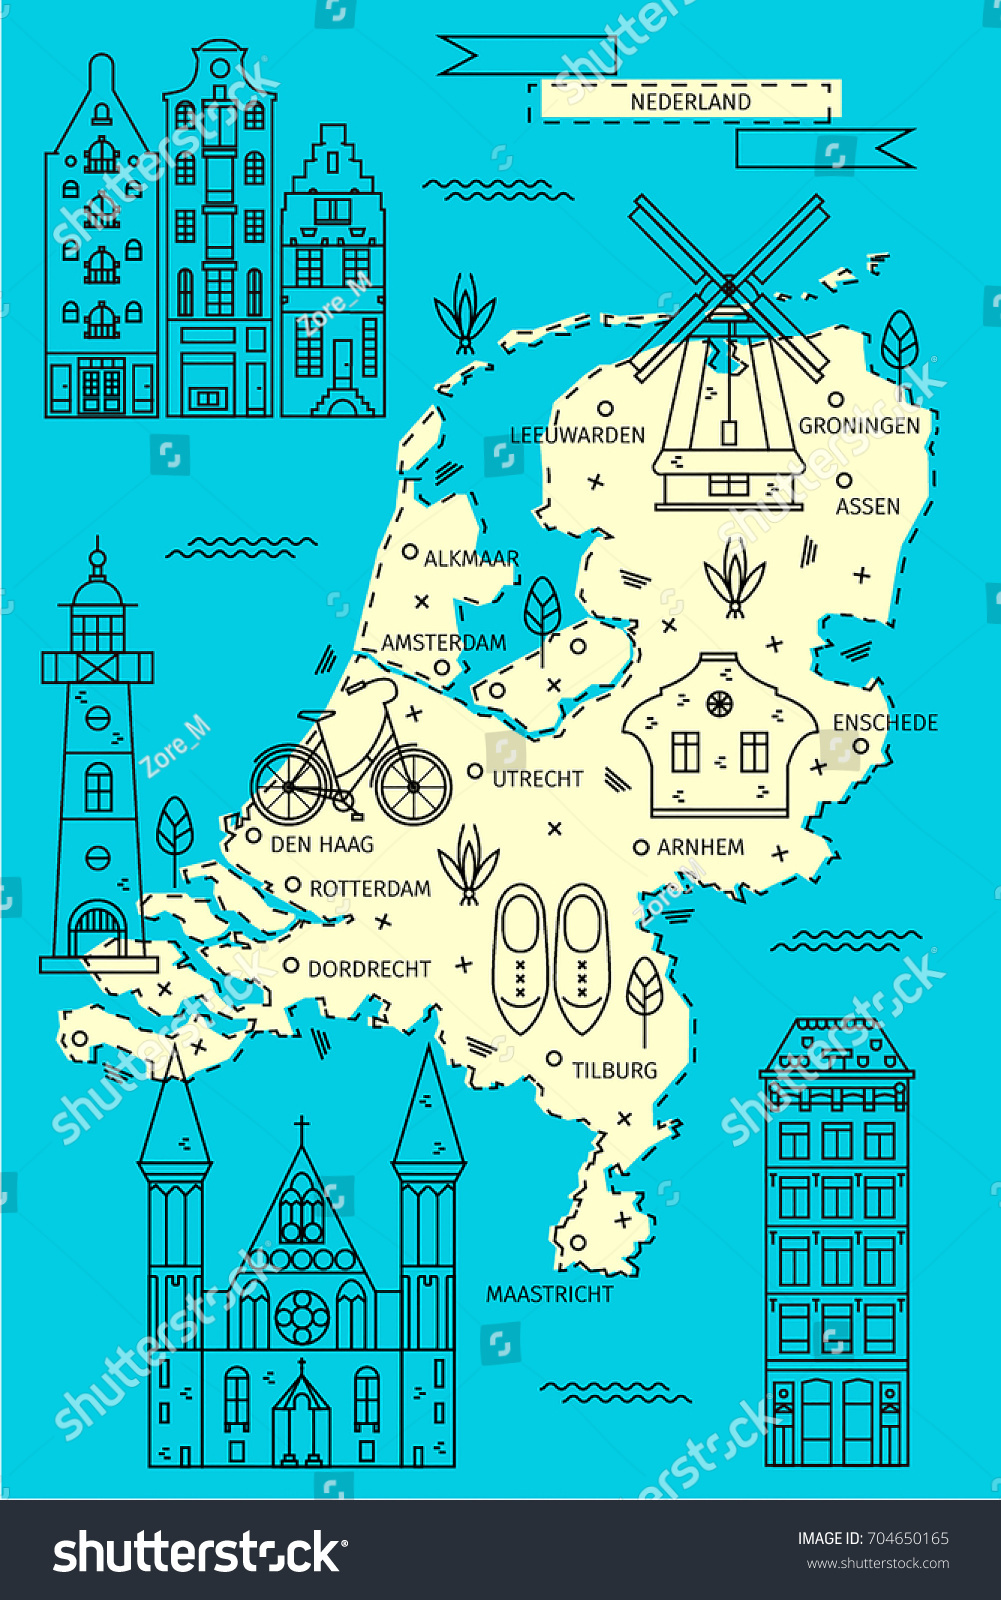 Netherlands Map Flat Line Design Toprated Stock Photo Photo Vector